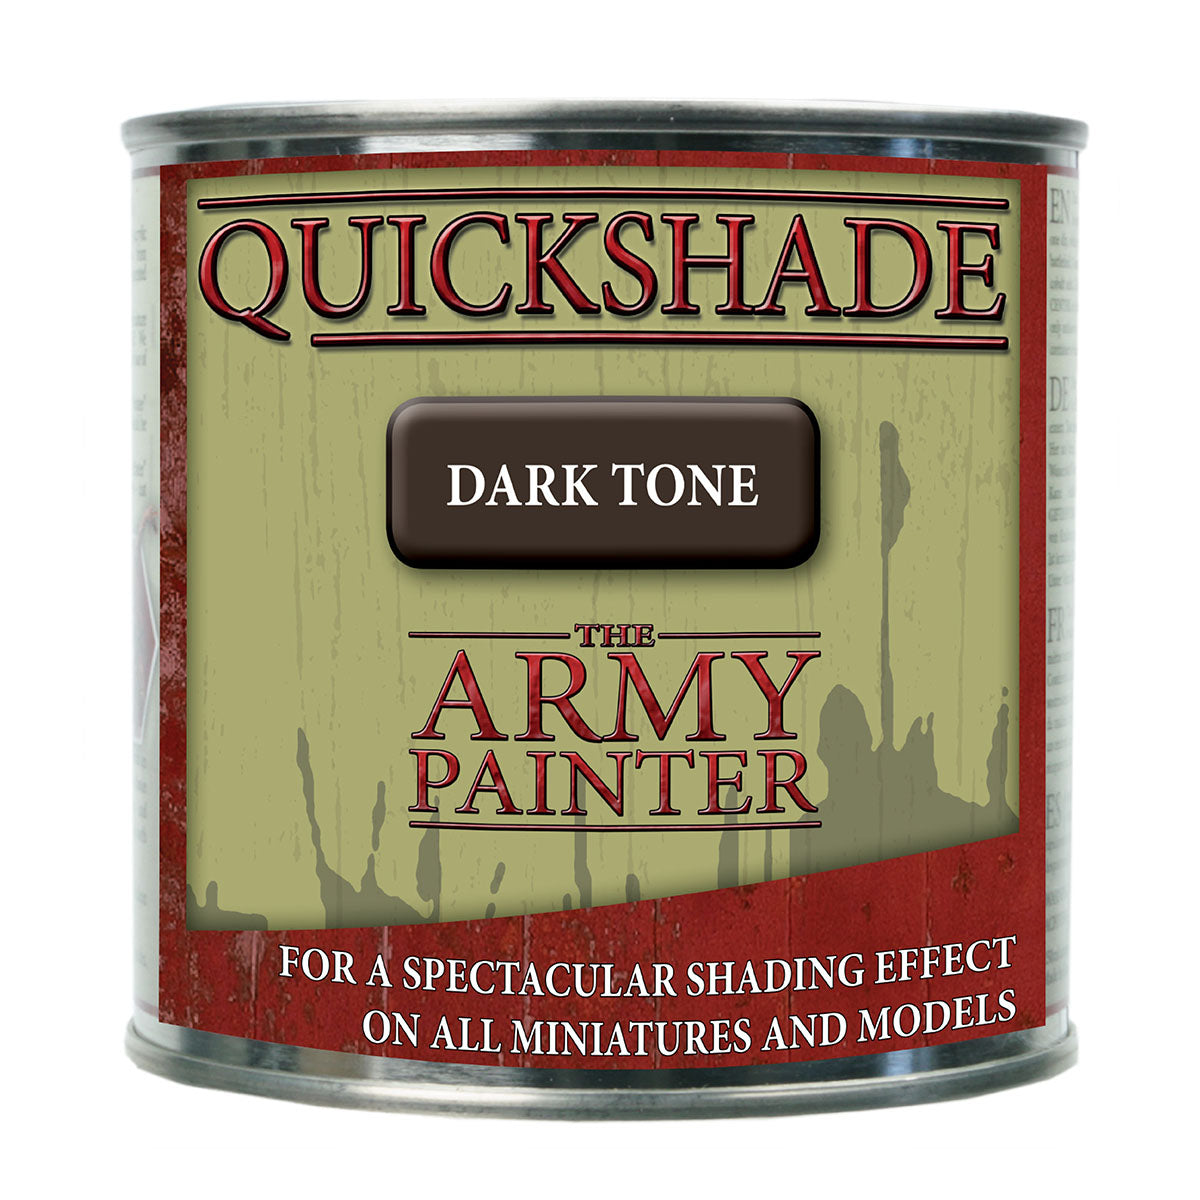 The Army Painter Quickshade Dark Tone | Mythicos